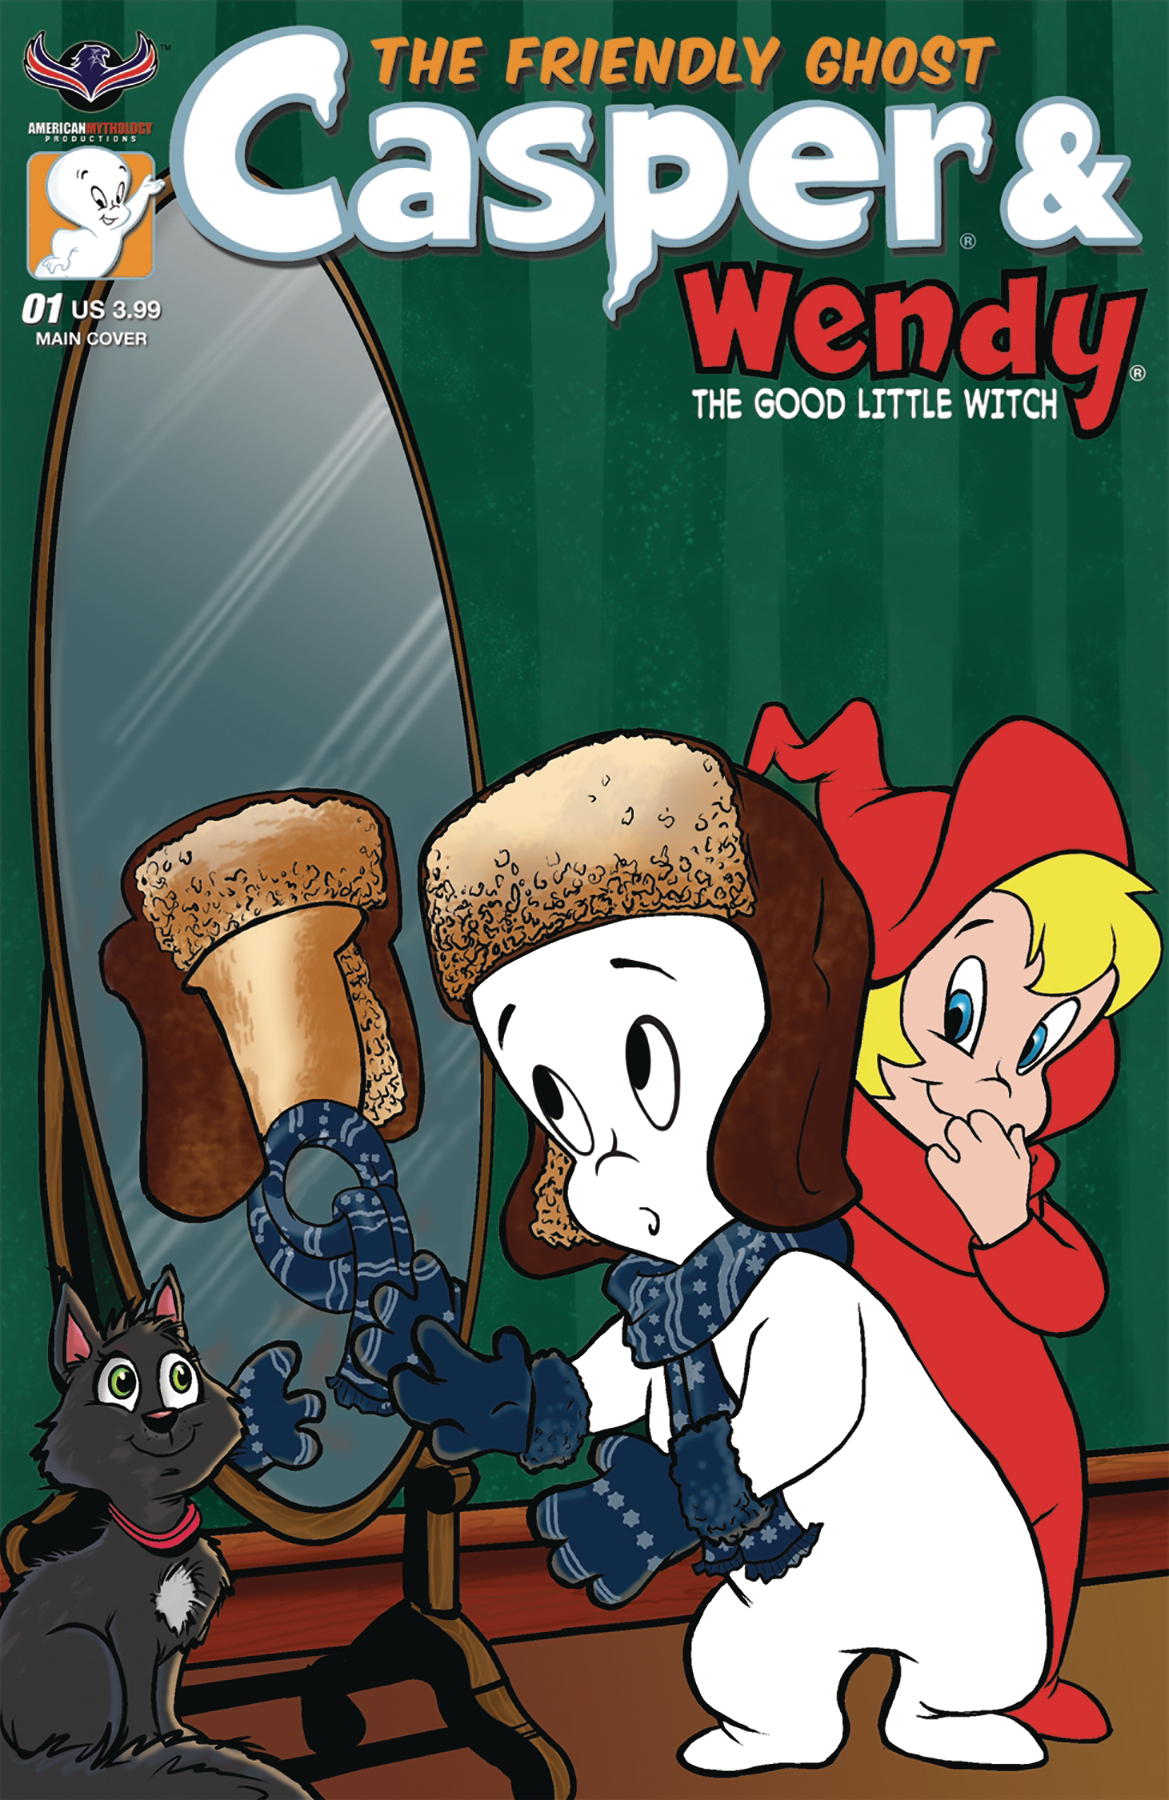 casper and wendy. casper and wendy #1 main cvr casper and wendy